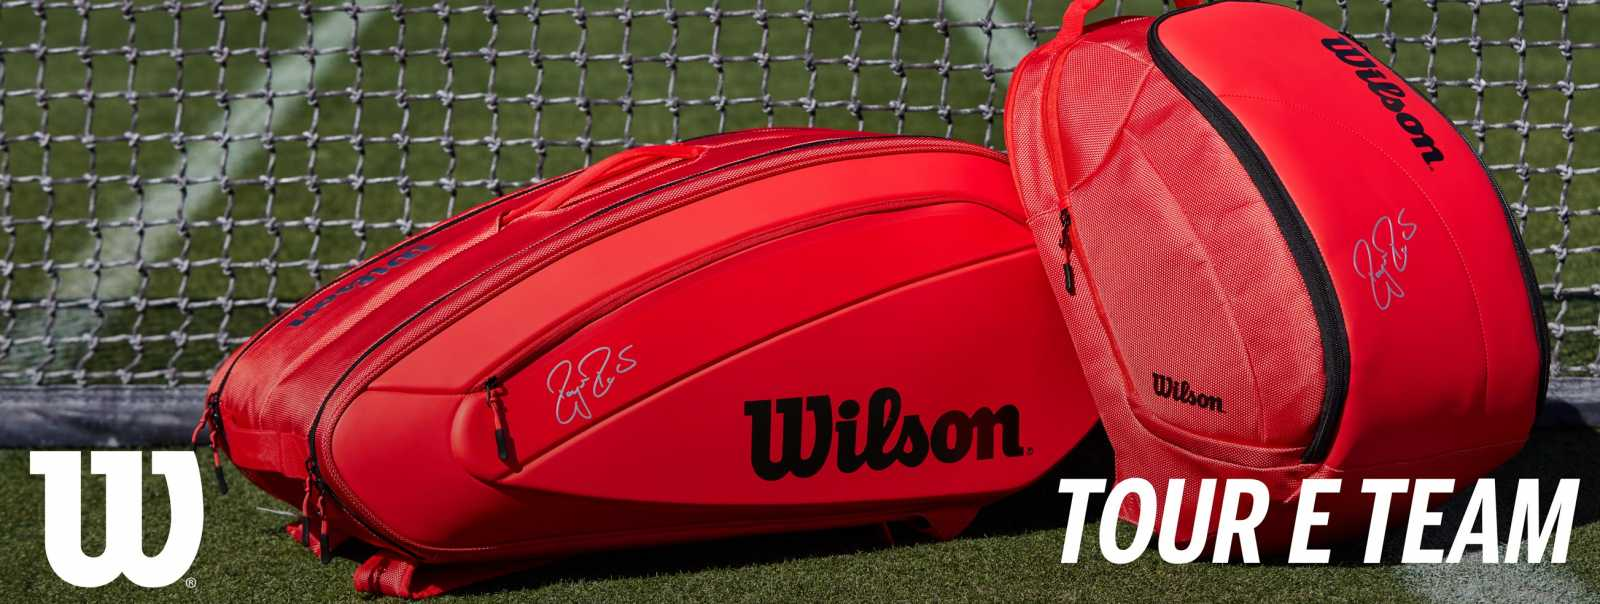 Sacos Wilson Tour e Team